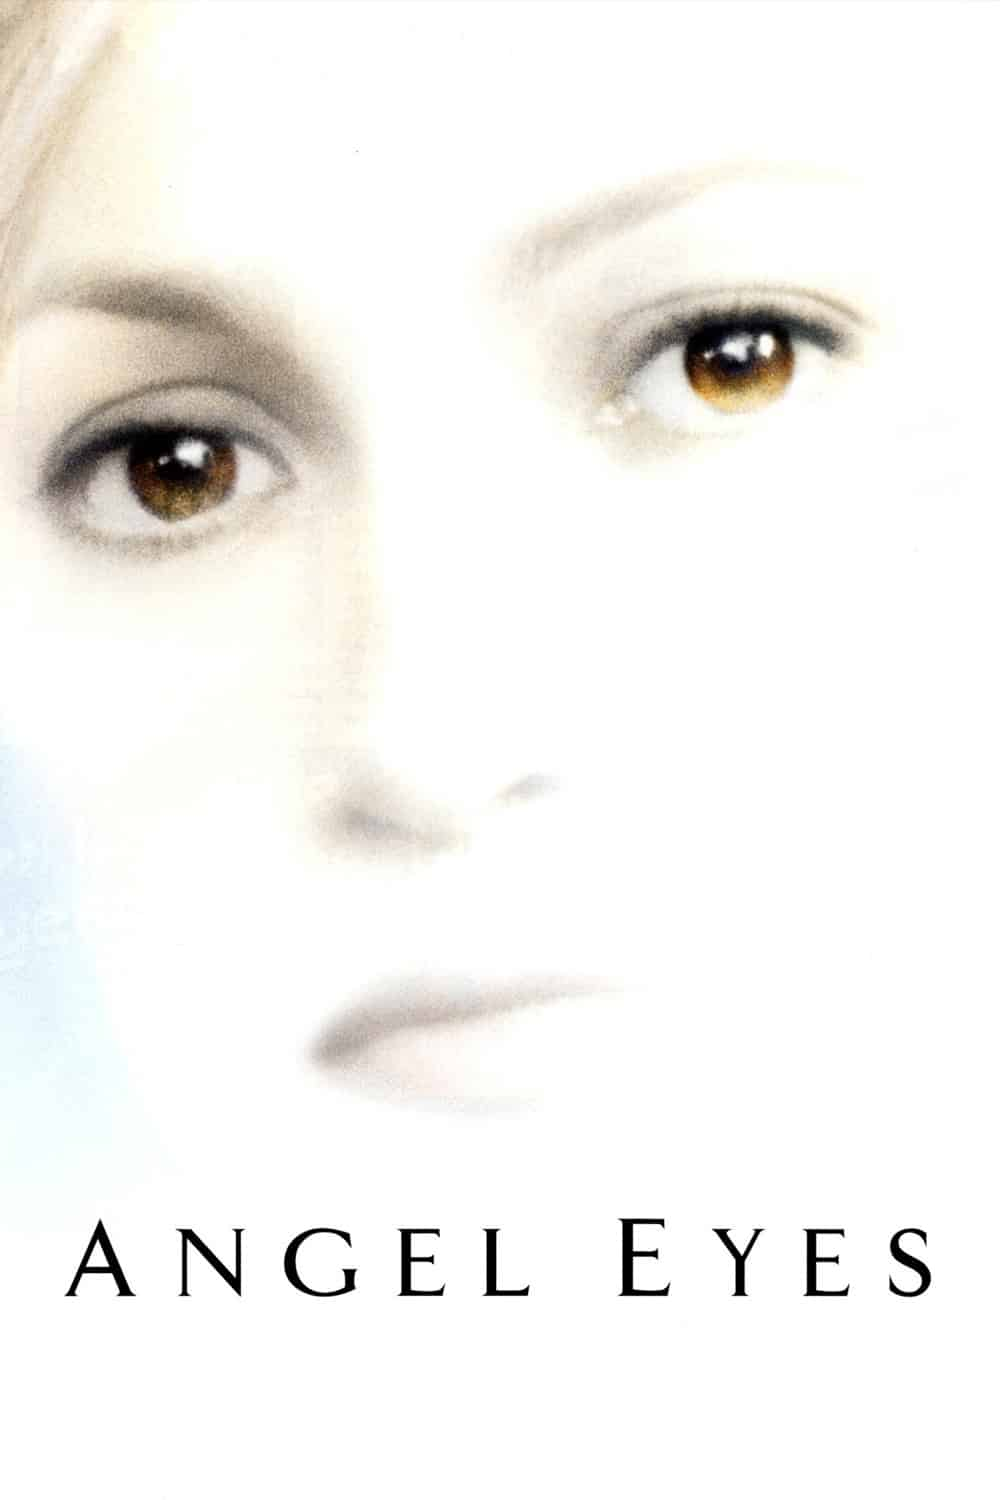 Angel Eyes, 2001